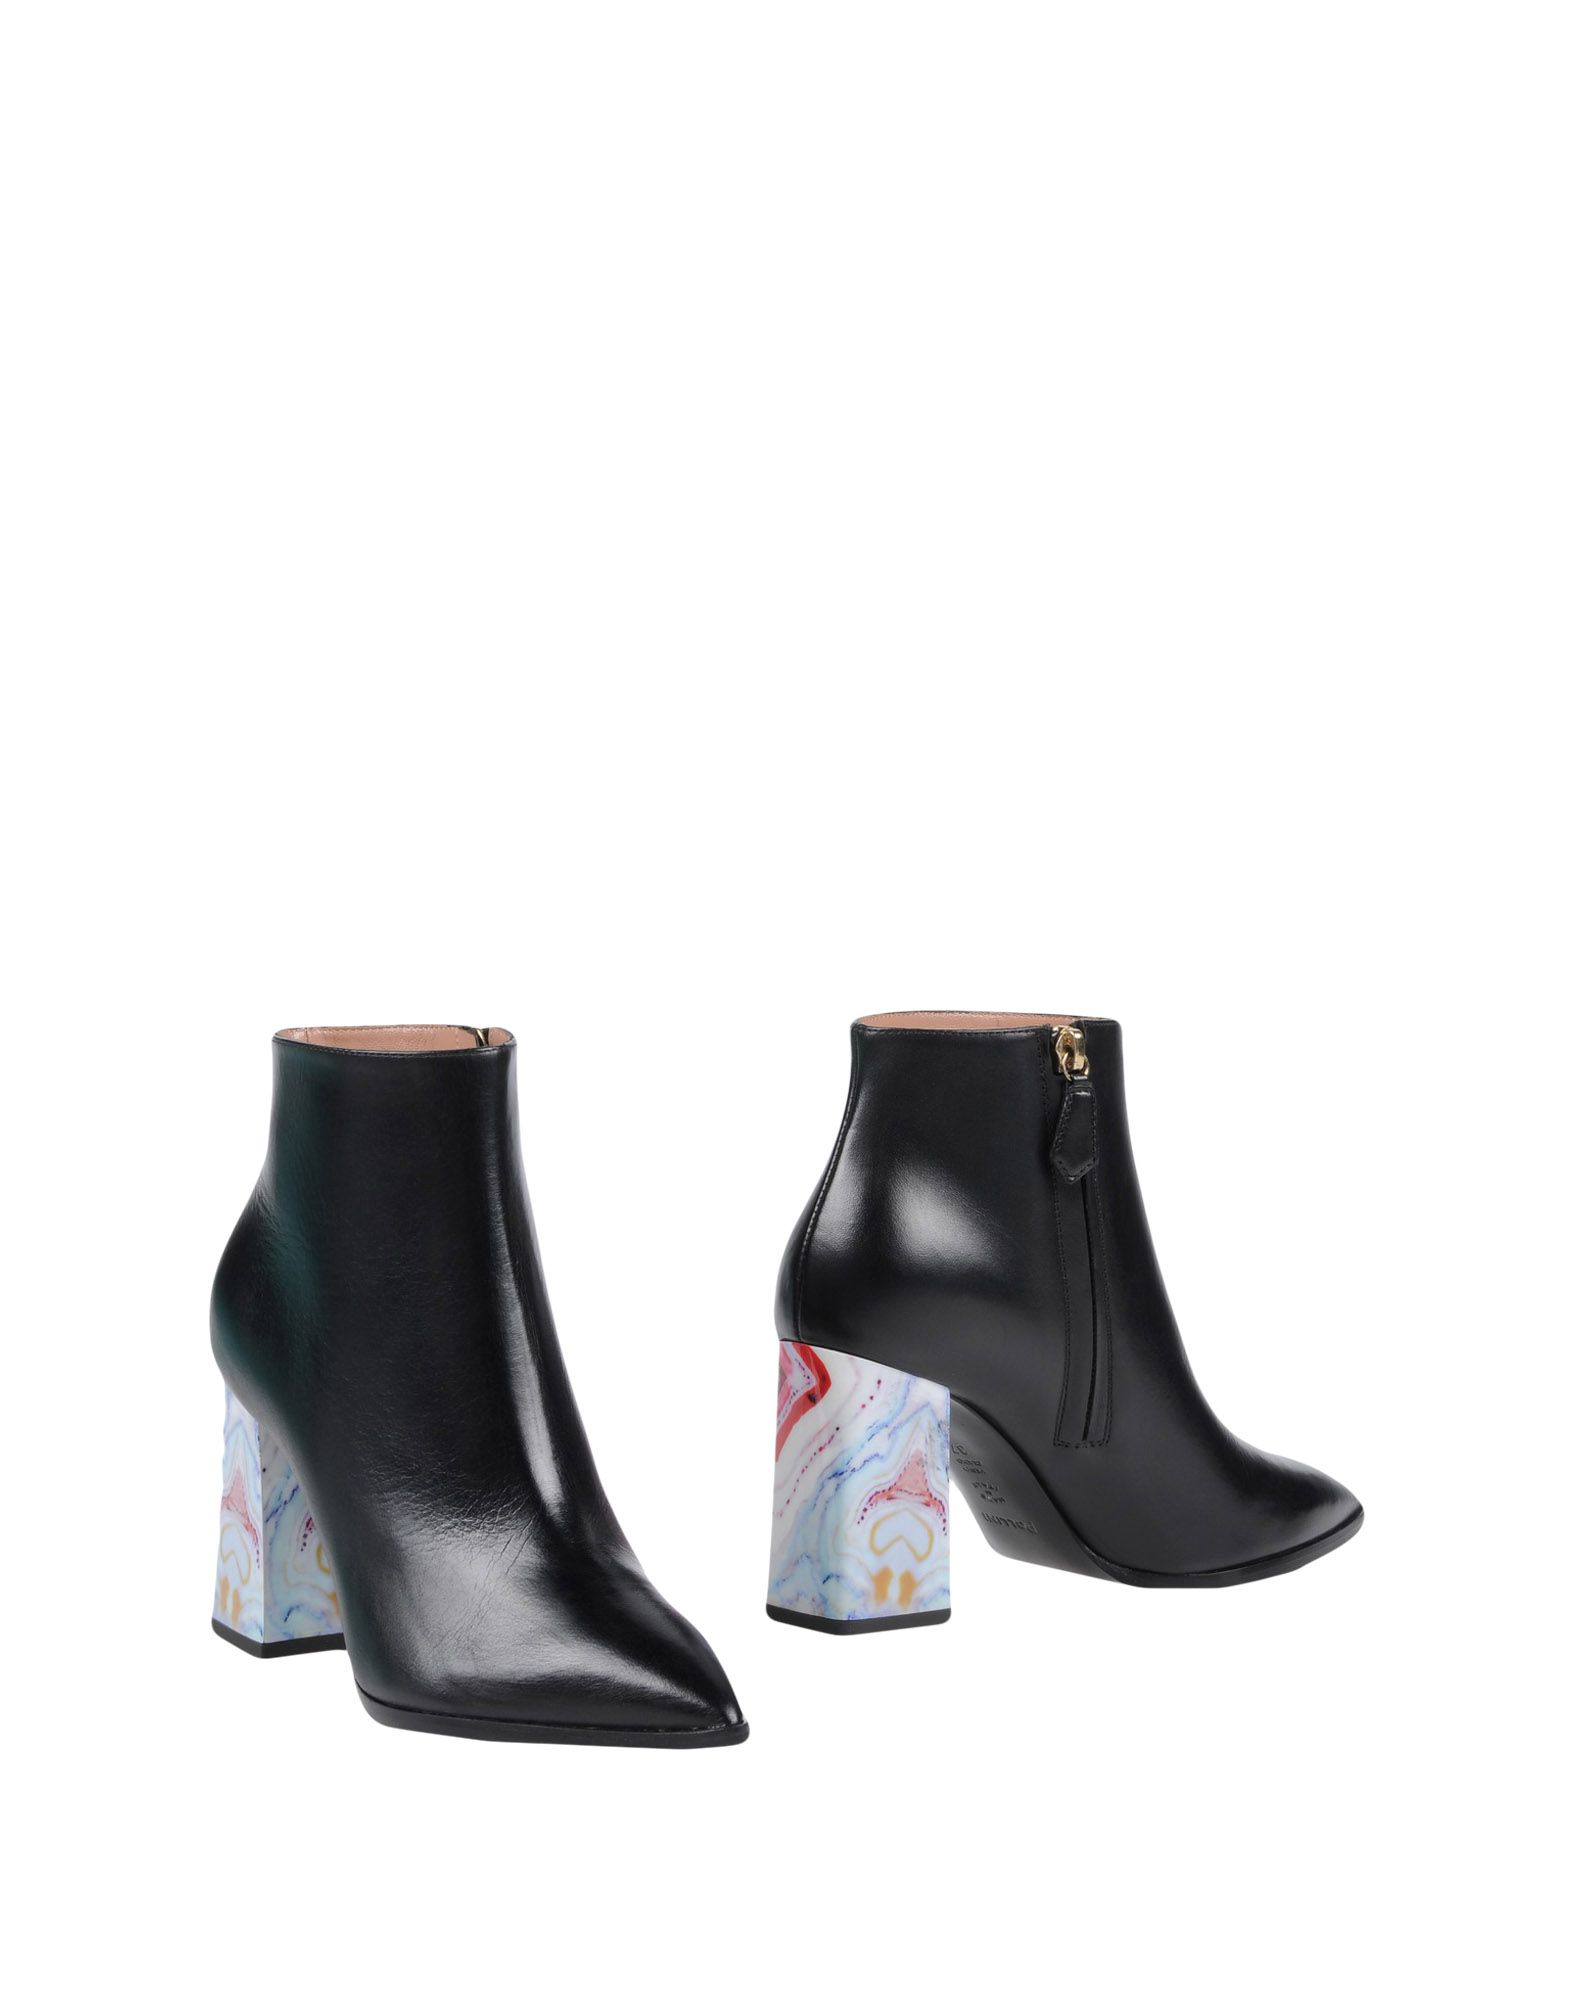 Pollini Ankle Boot - Women Pollini Ankle United Boots online on  United Ankle Kingdom - 11446978TJ 190581